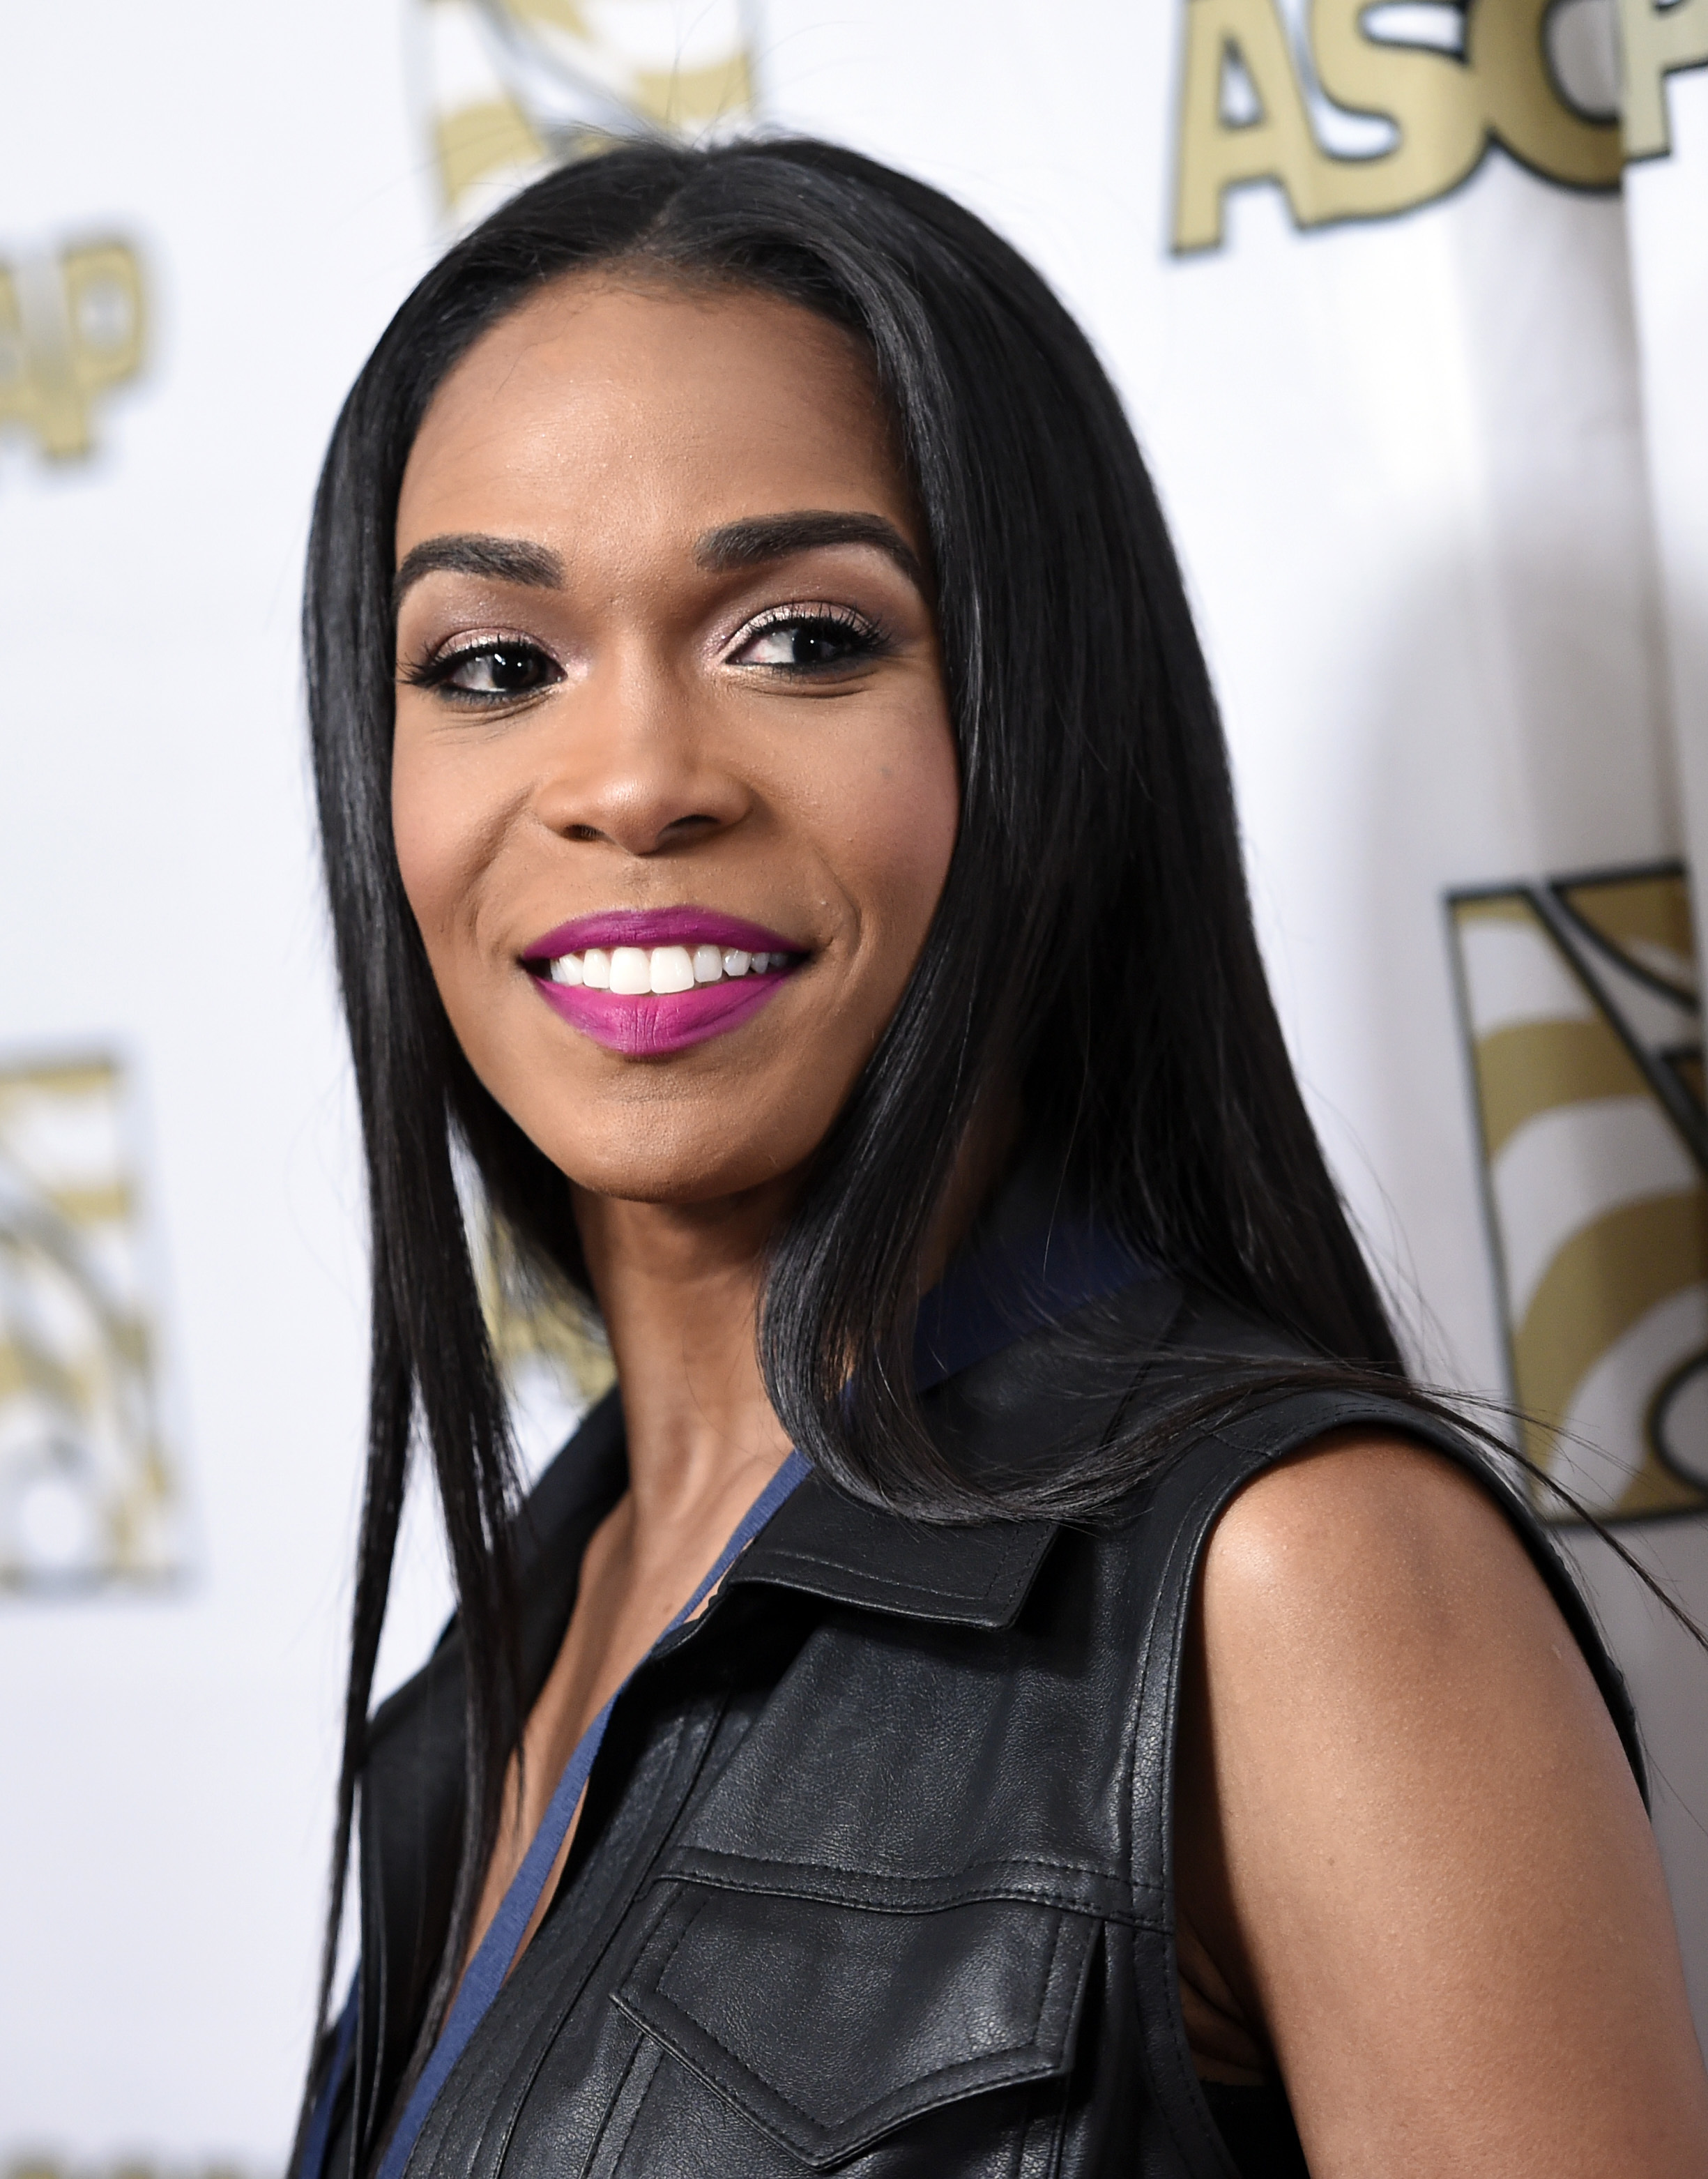 Michelle Williams poses at the 2015 ASCAP Rhythm & Soul Awards at the Beverly Wilshire Hotel in Beverly Hills in 2015.